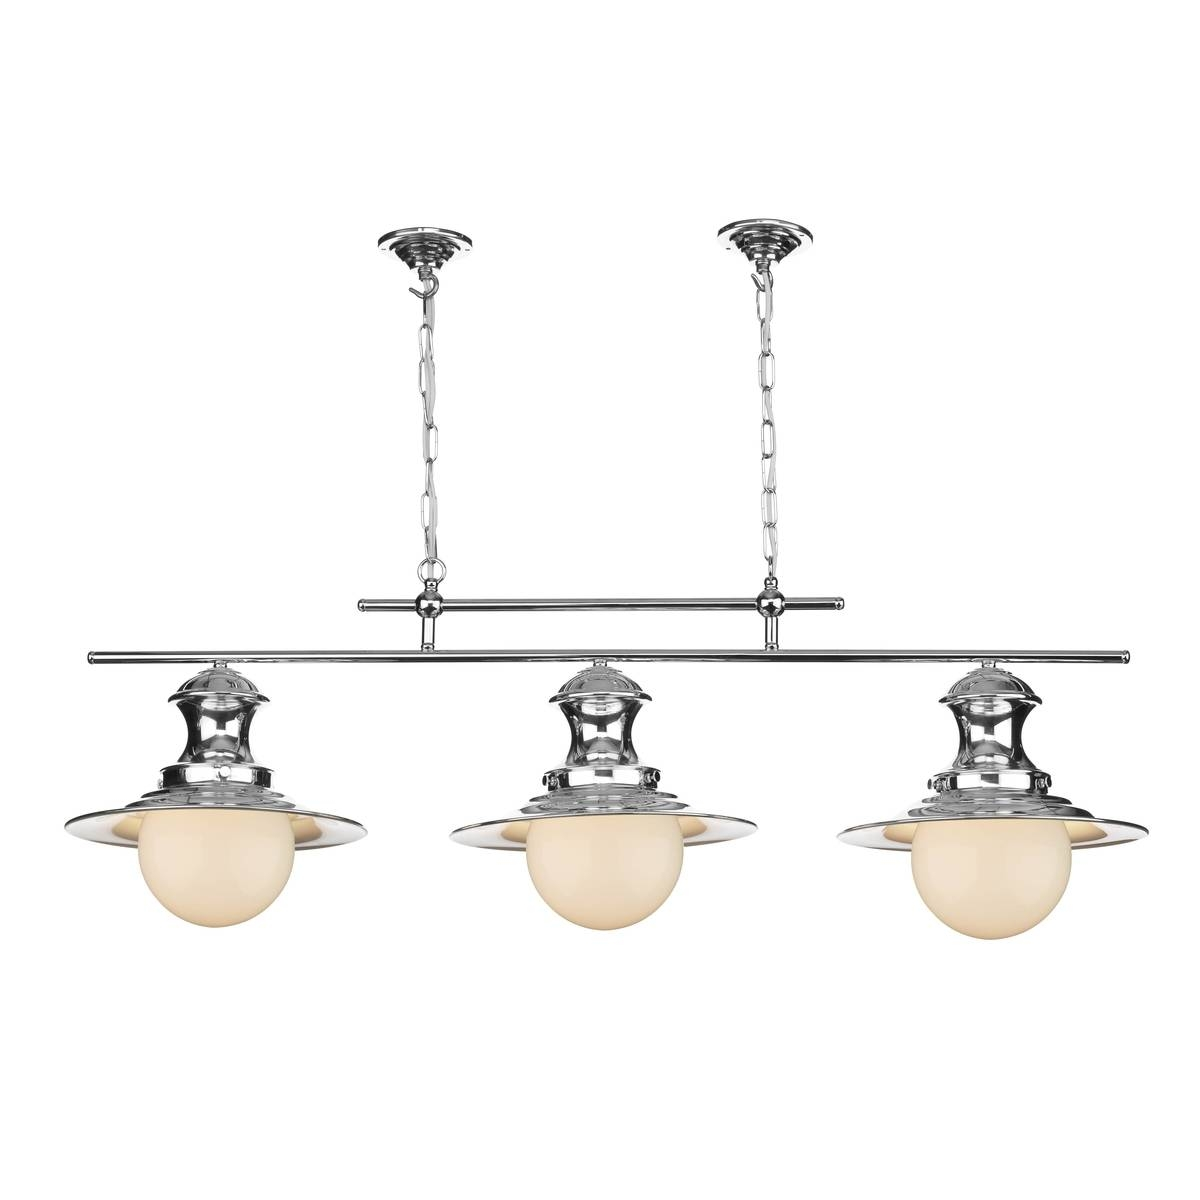 Station Polished Chrome 3 Light Pendant Bar intended for 3 Lights Pendant Fitter (Image 12 of 15)